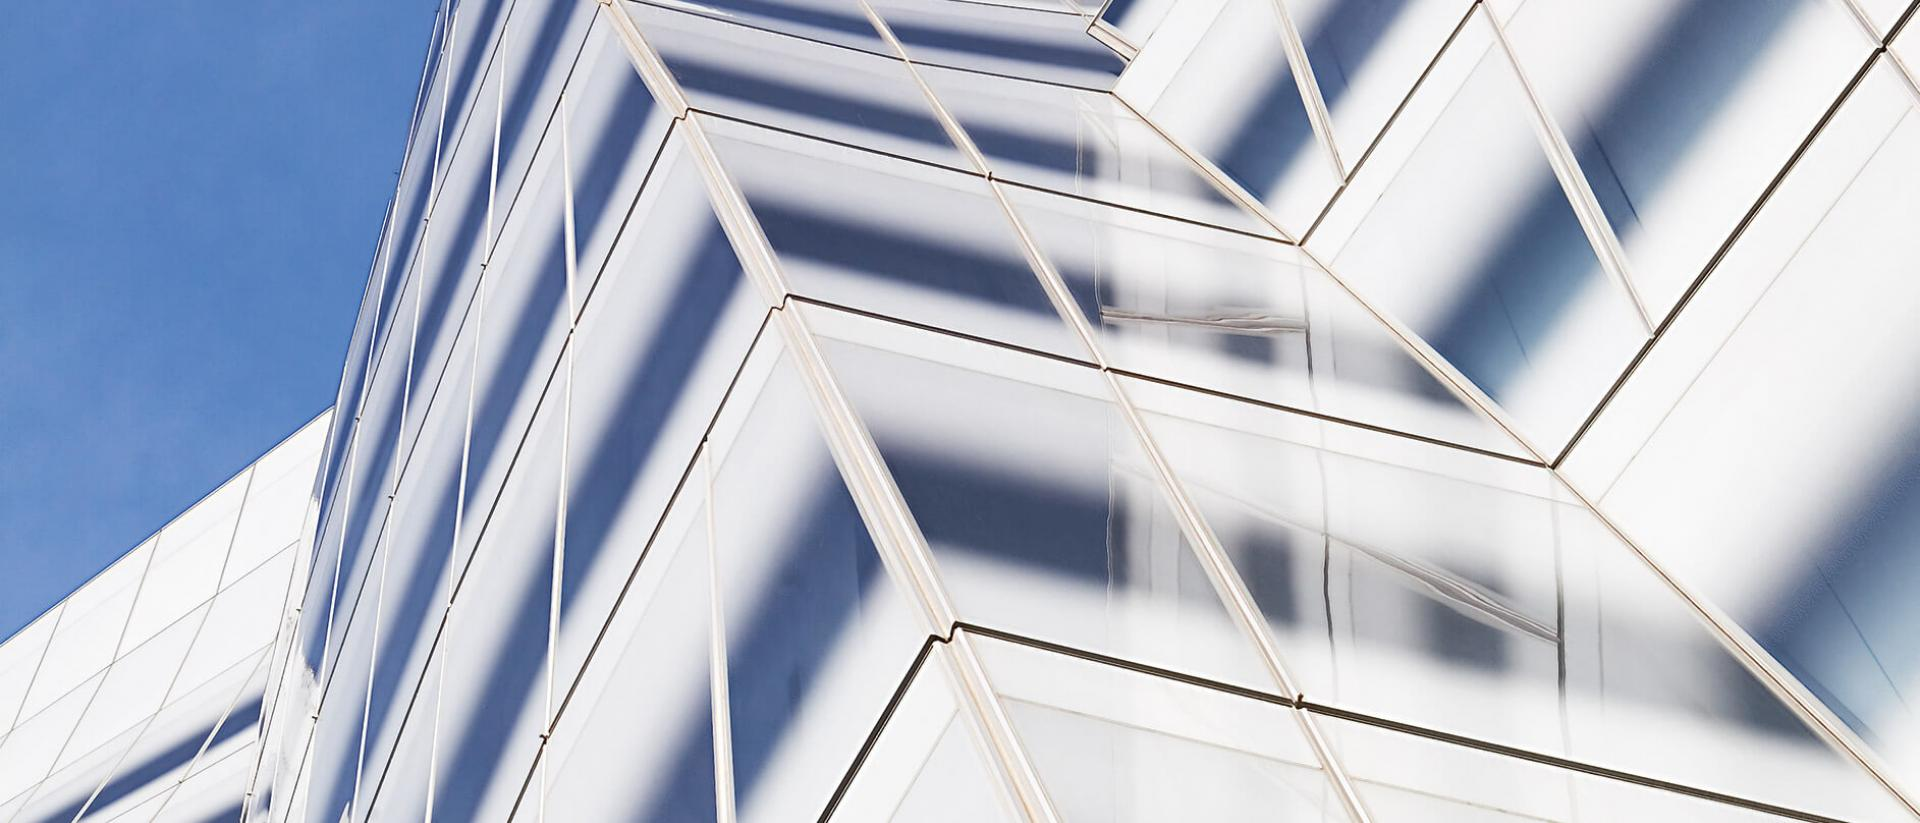 The IAC Building Project Architecture